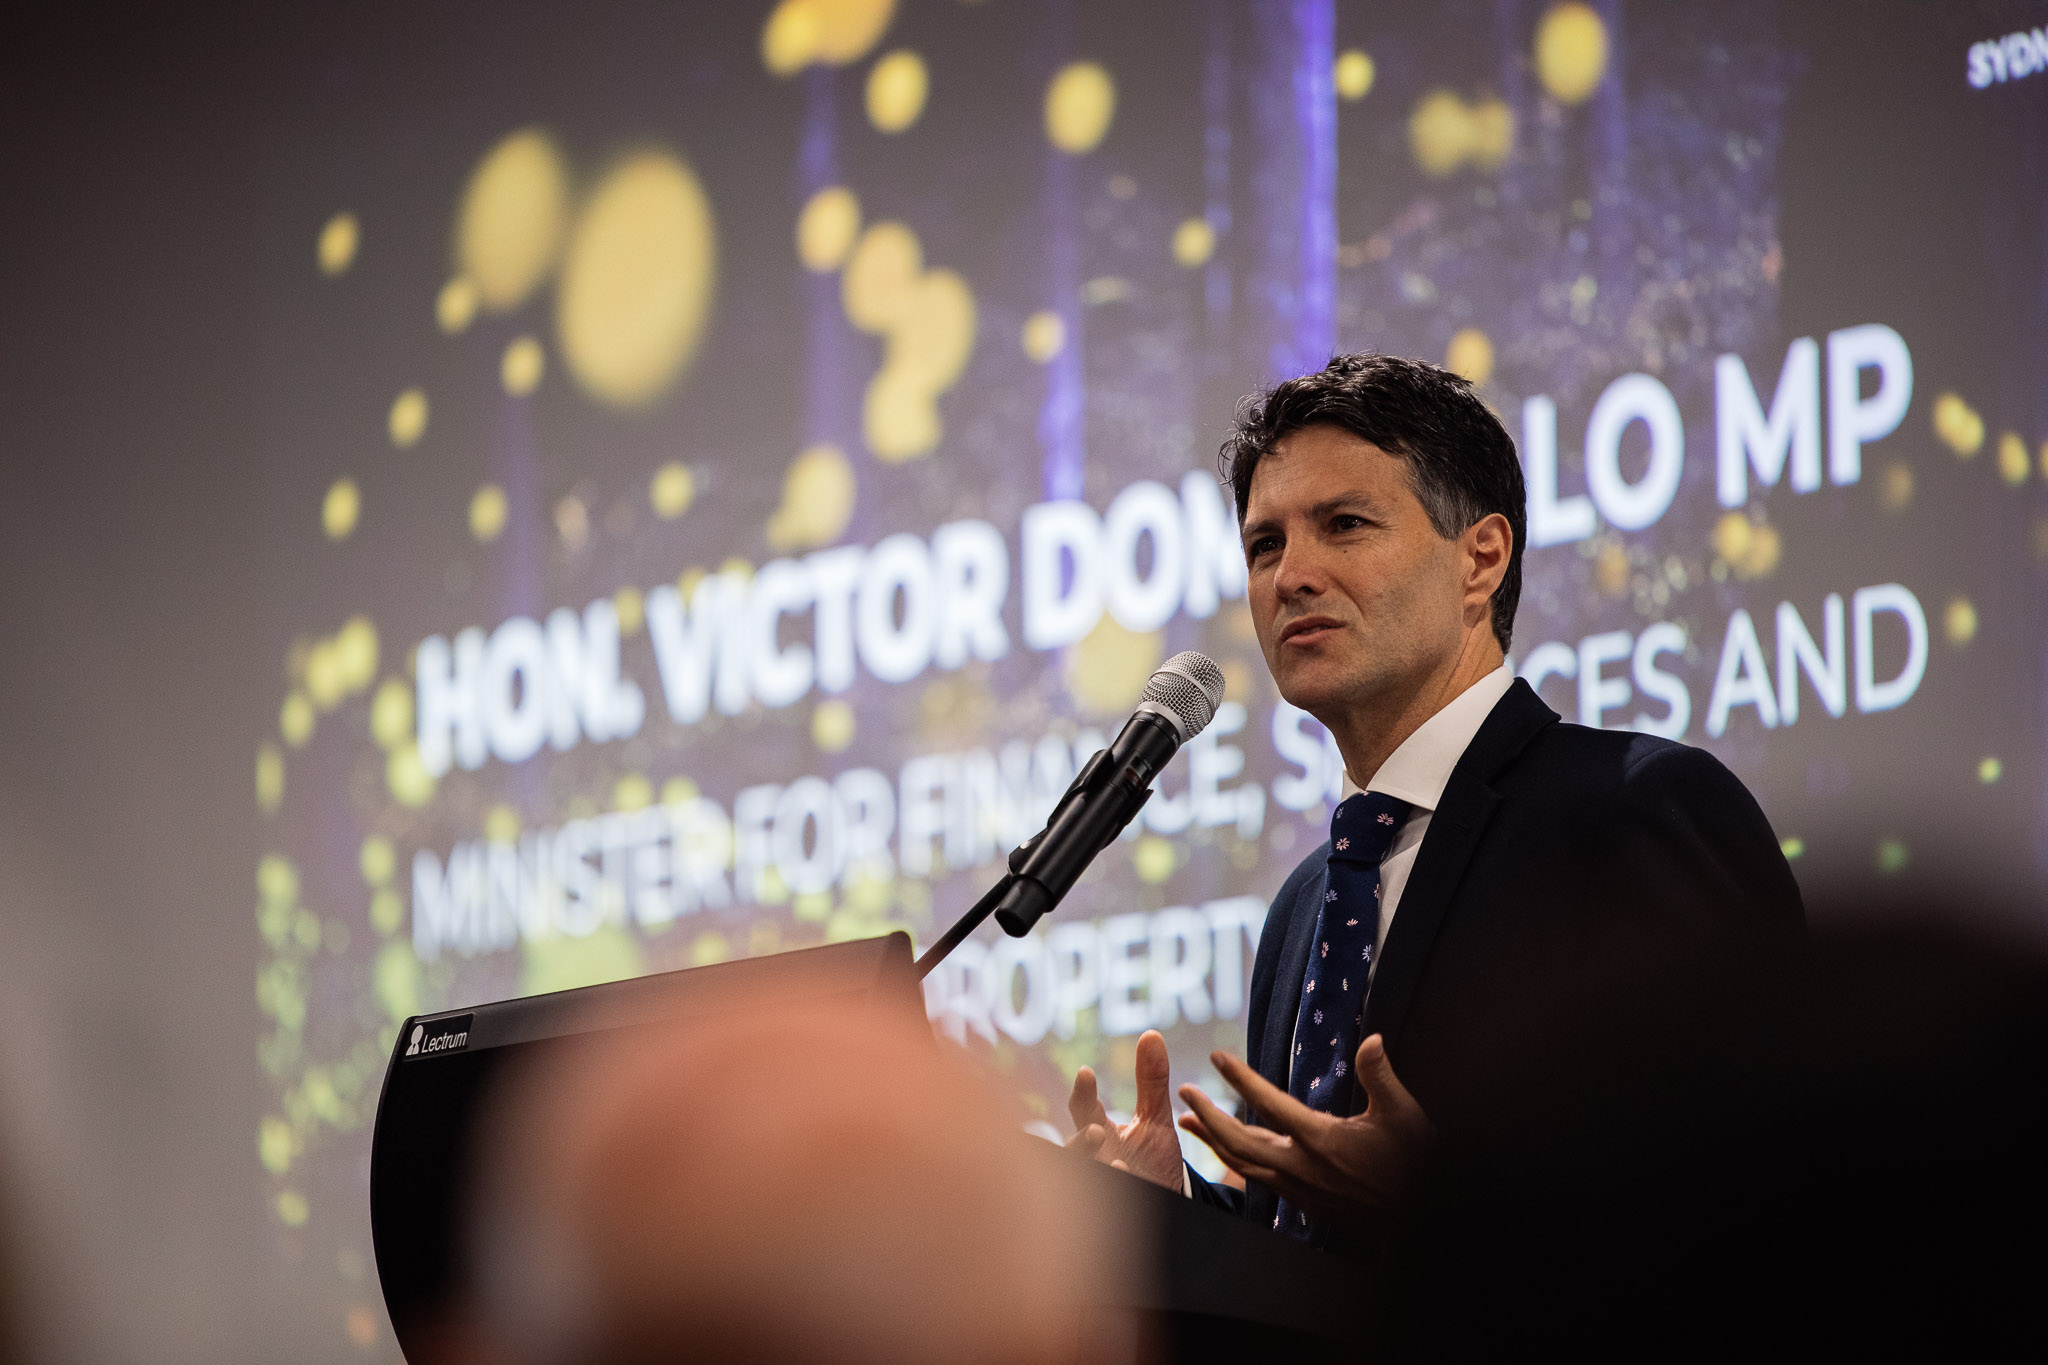 Hon. Victor Dominello MP